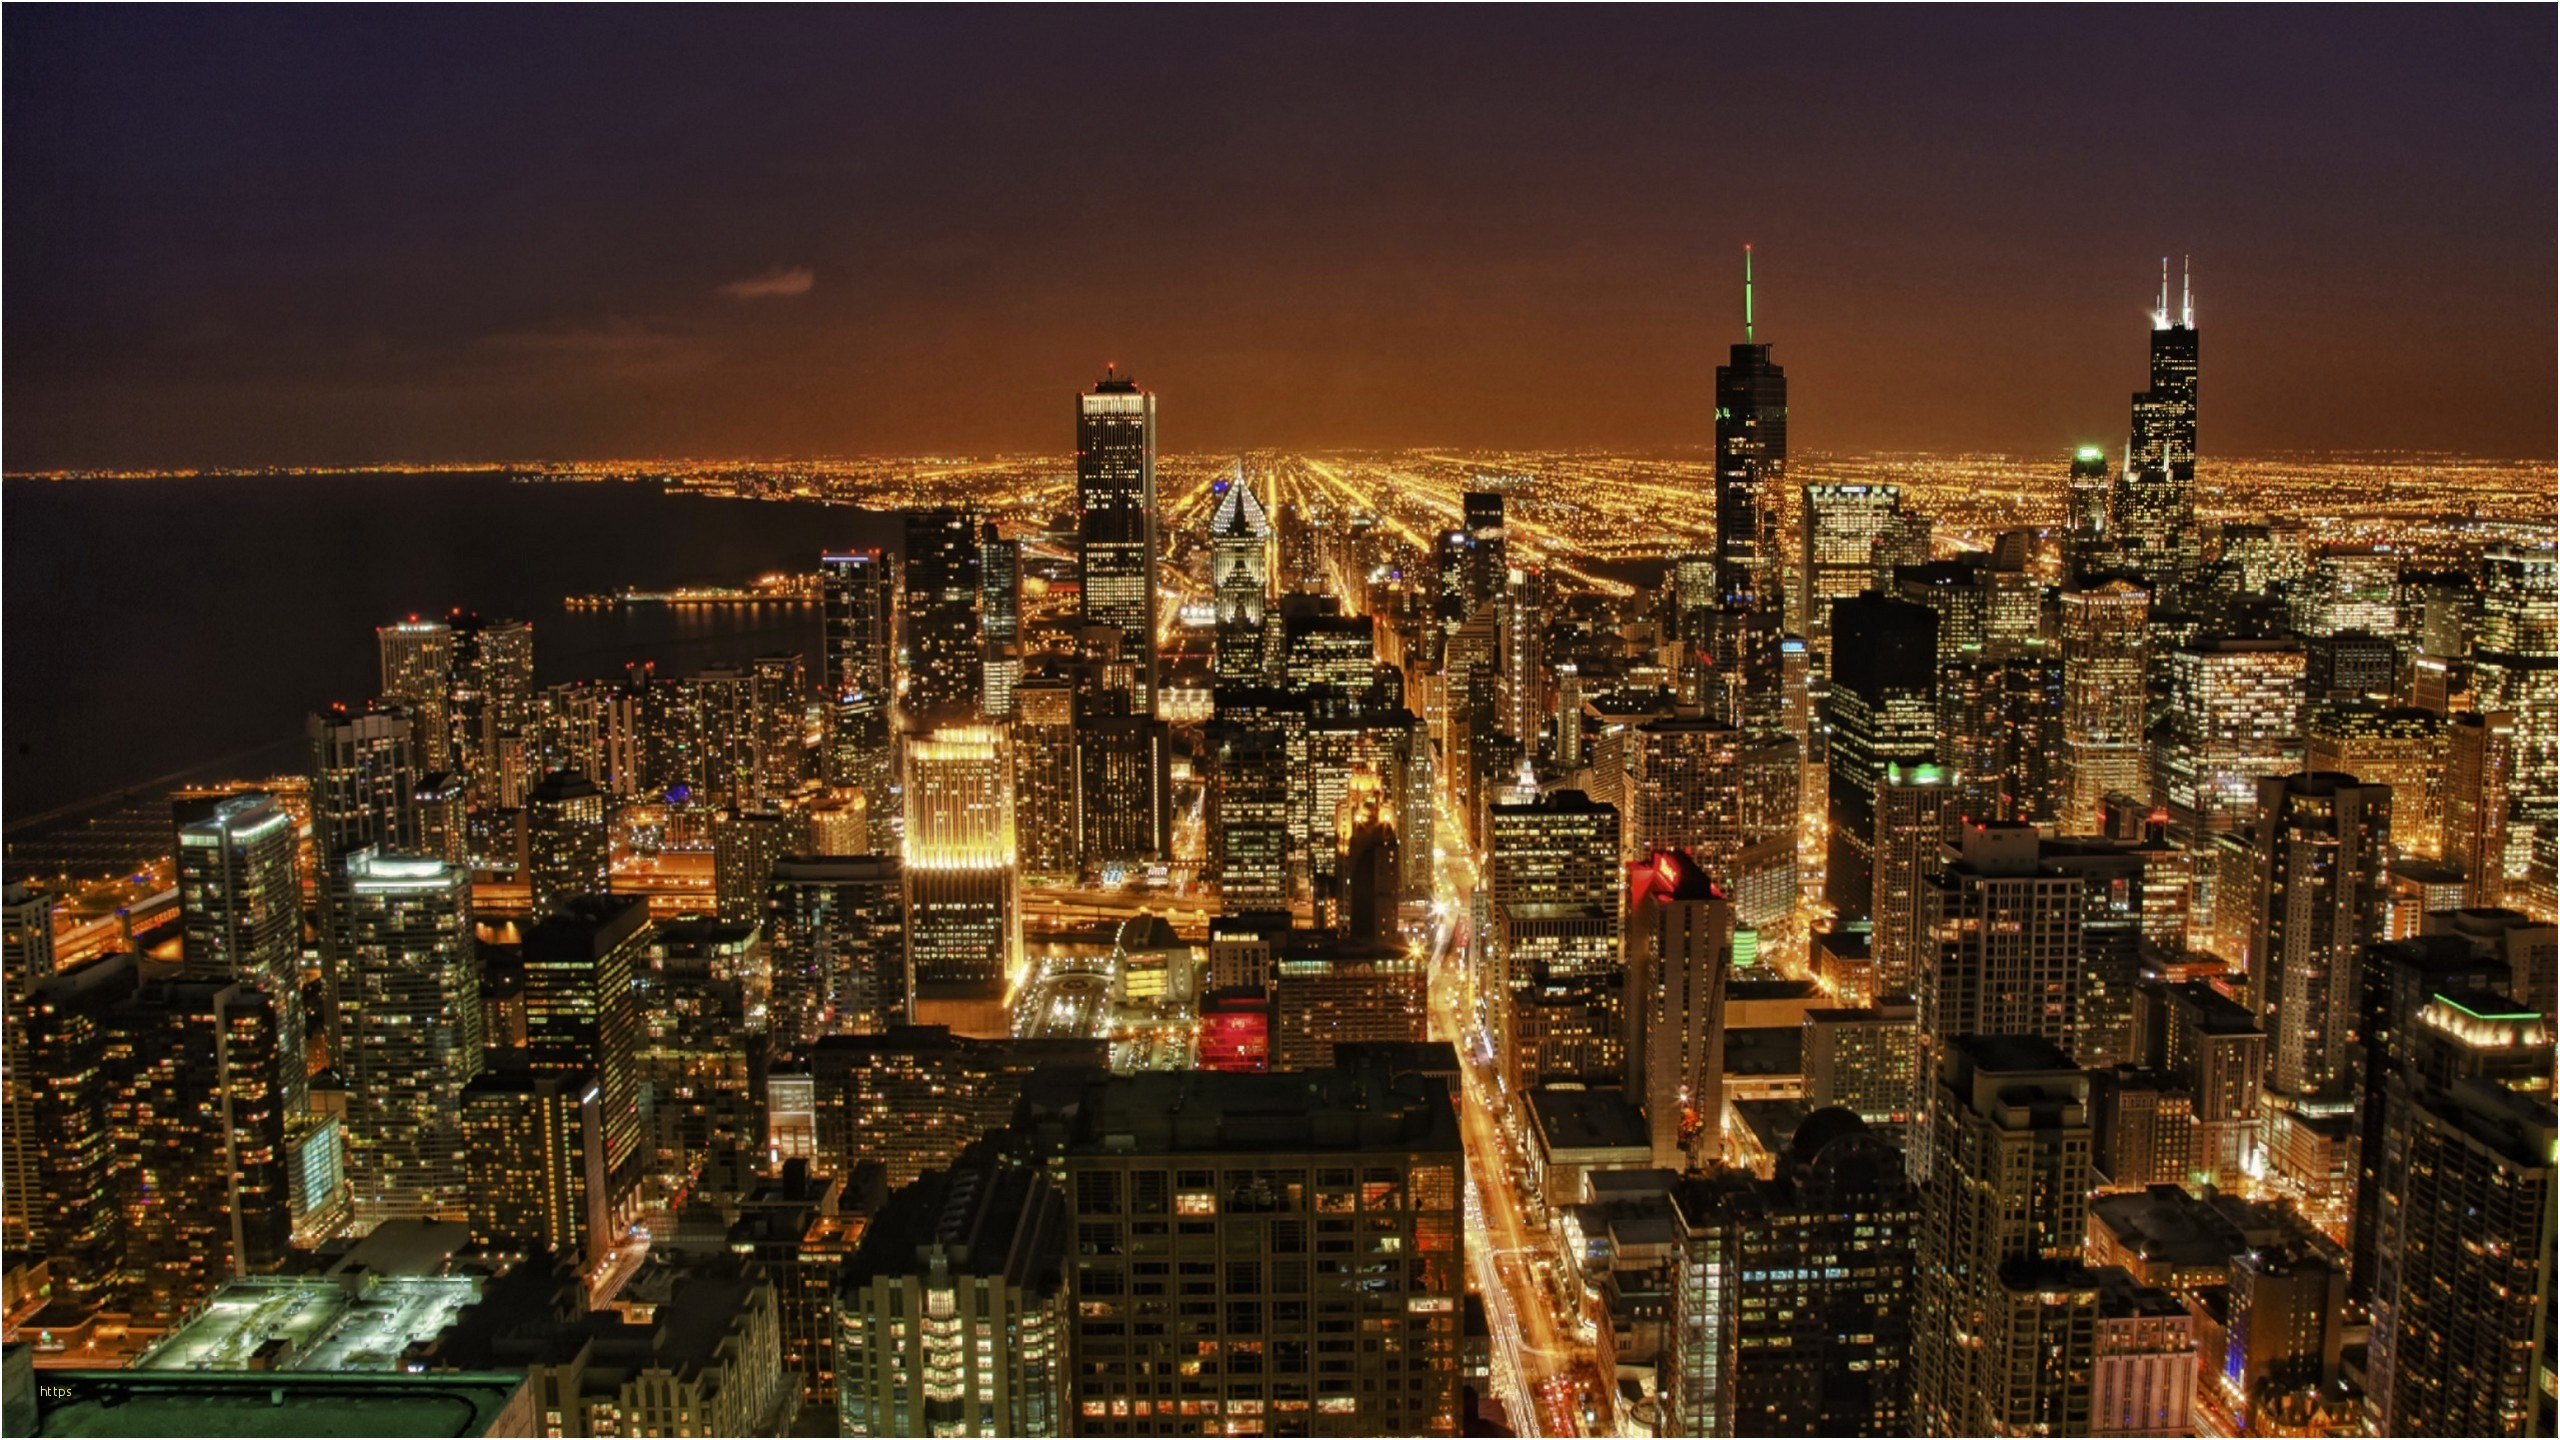 Chicago Hd Wallpapers Hd Wallpaper Collections 4kwallpaper Wiki